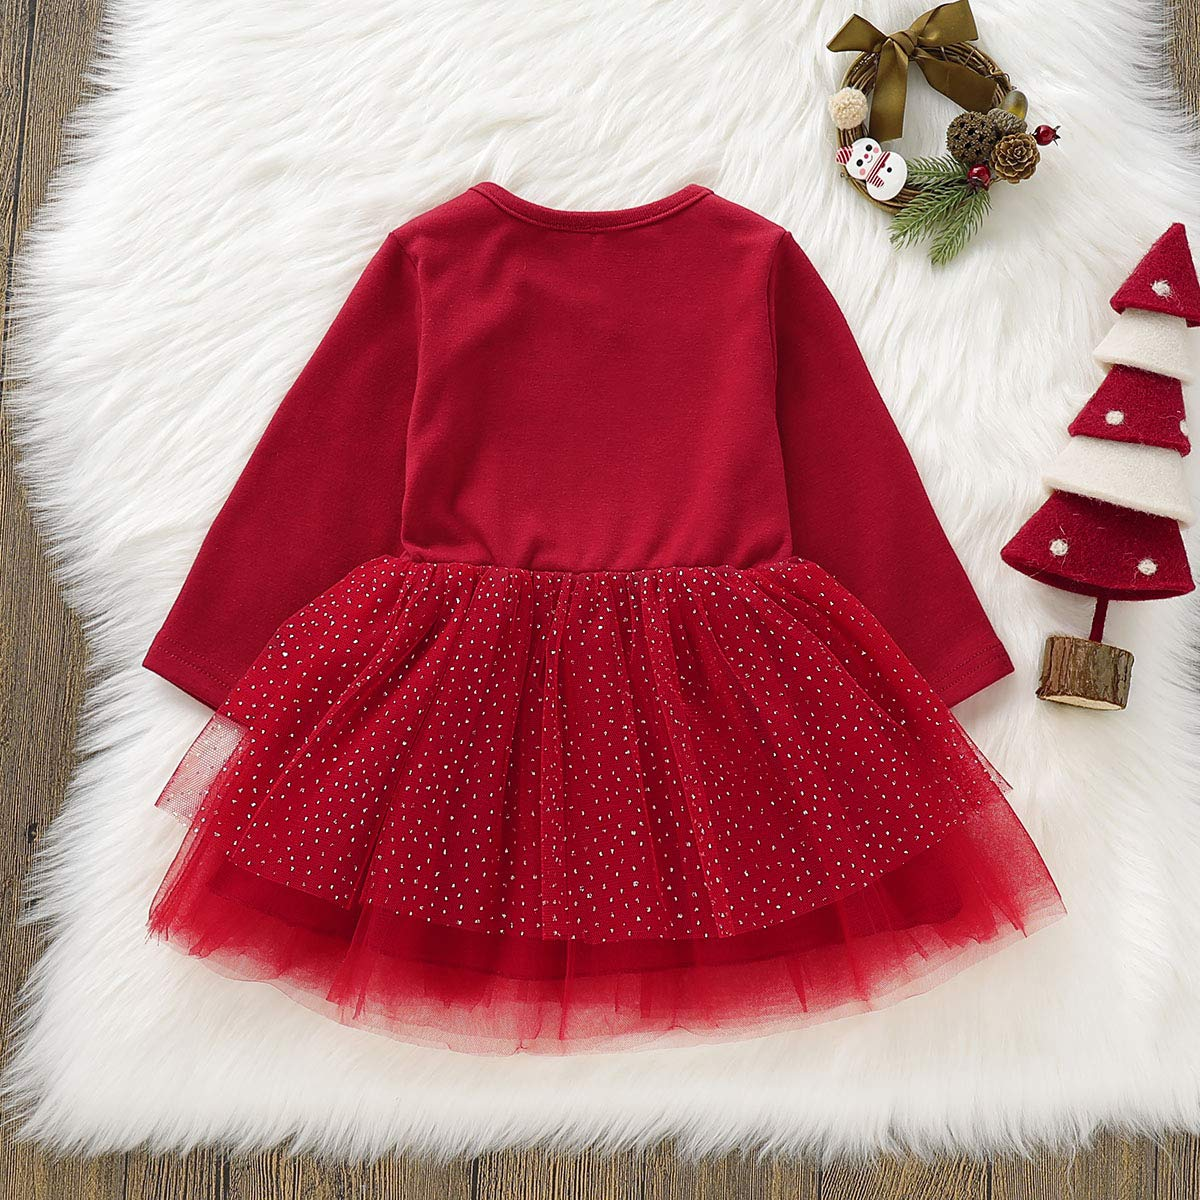 Tianhaik 1-4T Little Girls Christmas Elk Tutu Dress Princess Party Mesh Skirt Xmas Outfits